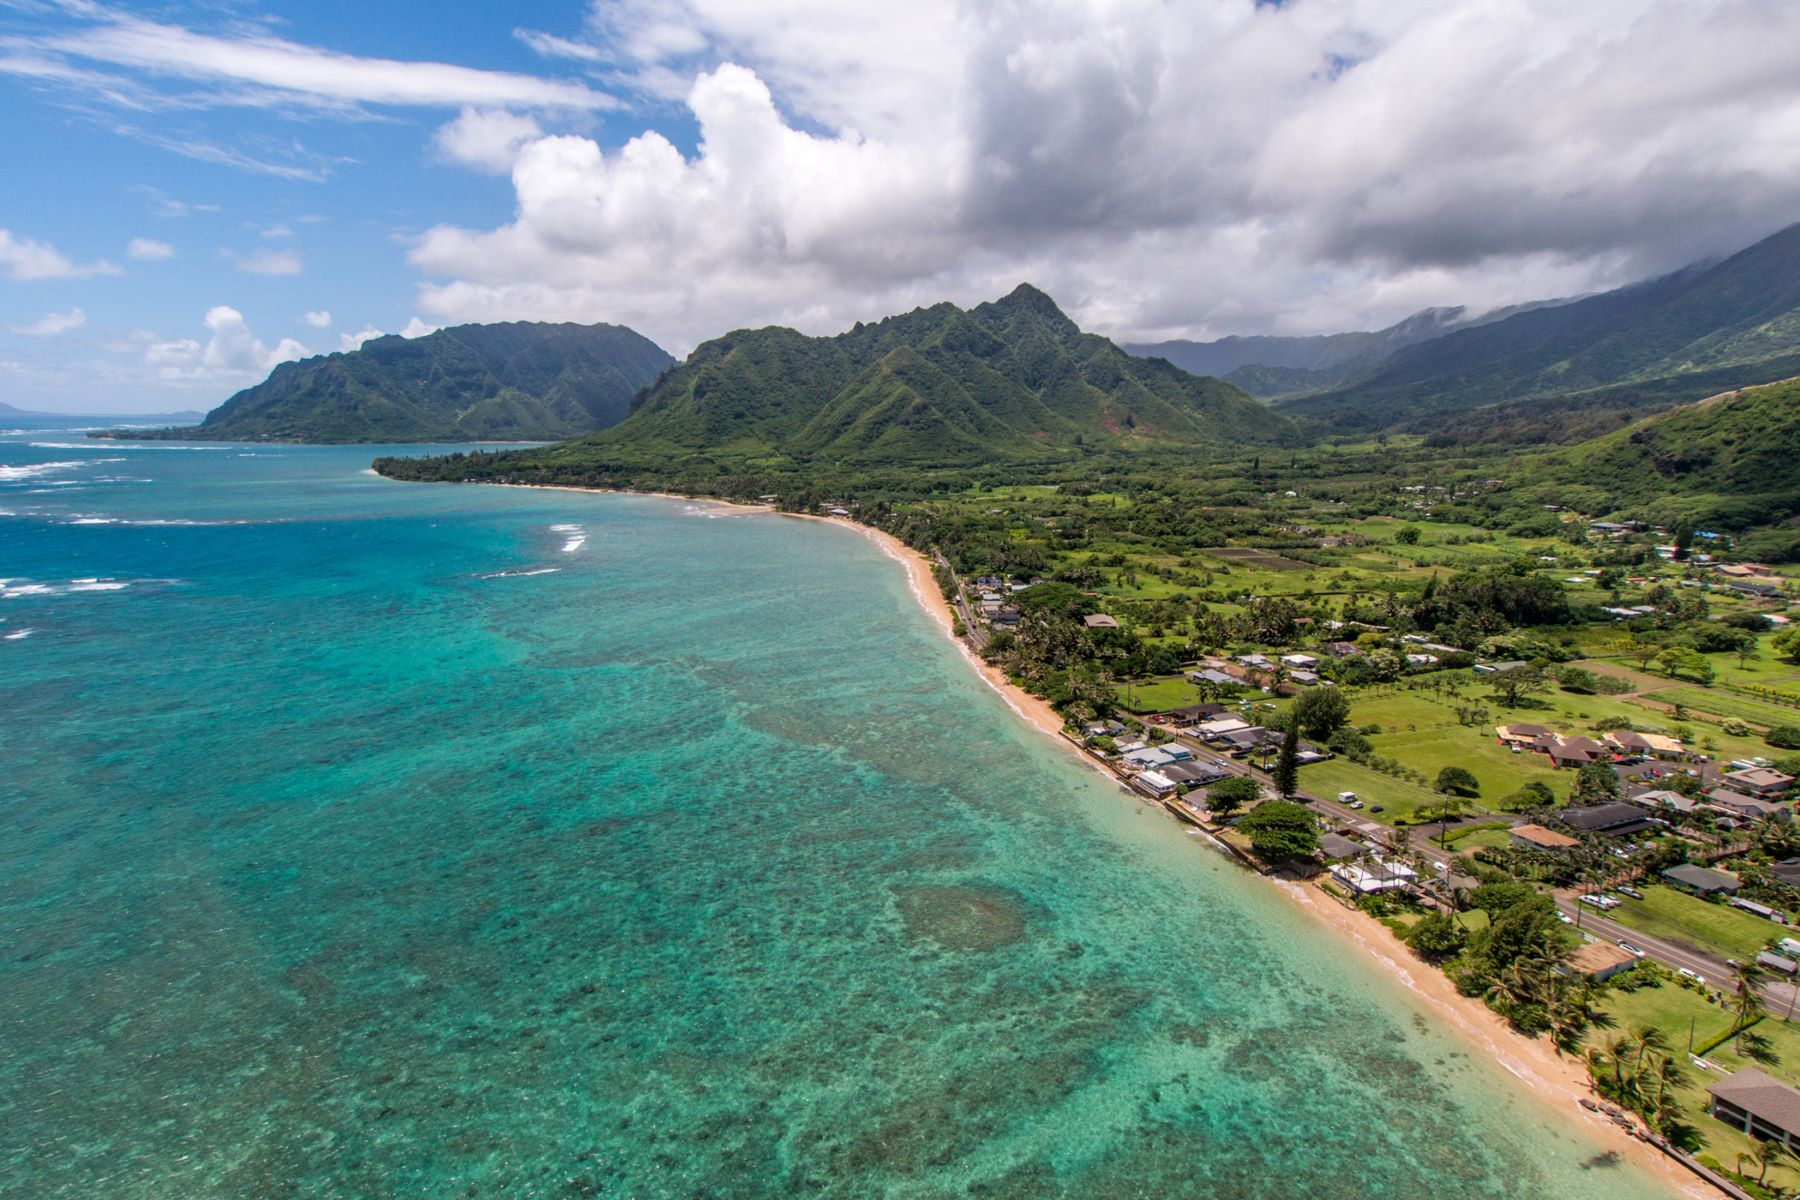 Land for Sale at Vacant Land, Hauula, Mountain View, Ocean View, Kaneohe 53-000 Kamehameha Hwy Hauula, Hawaii 96717 United States